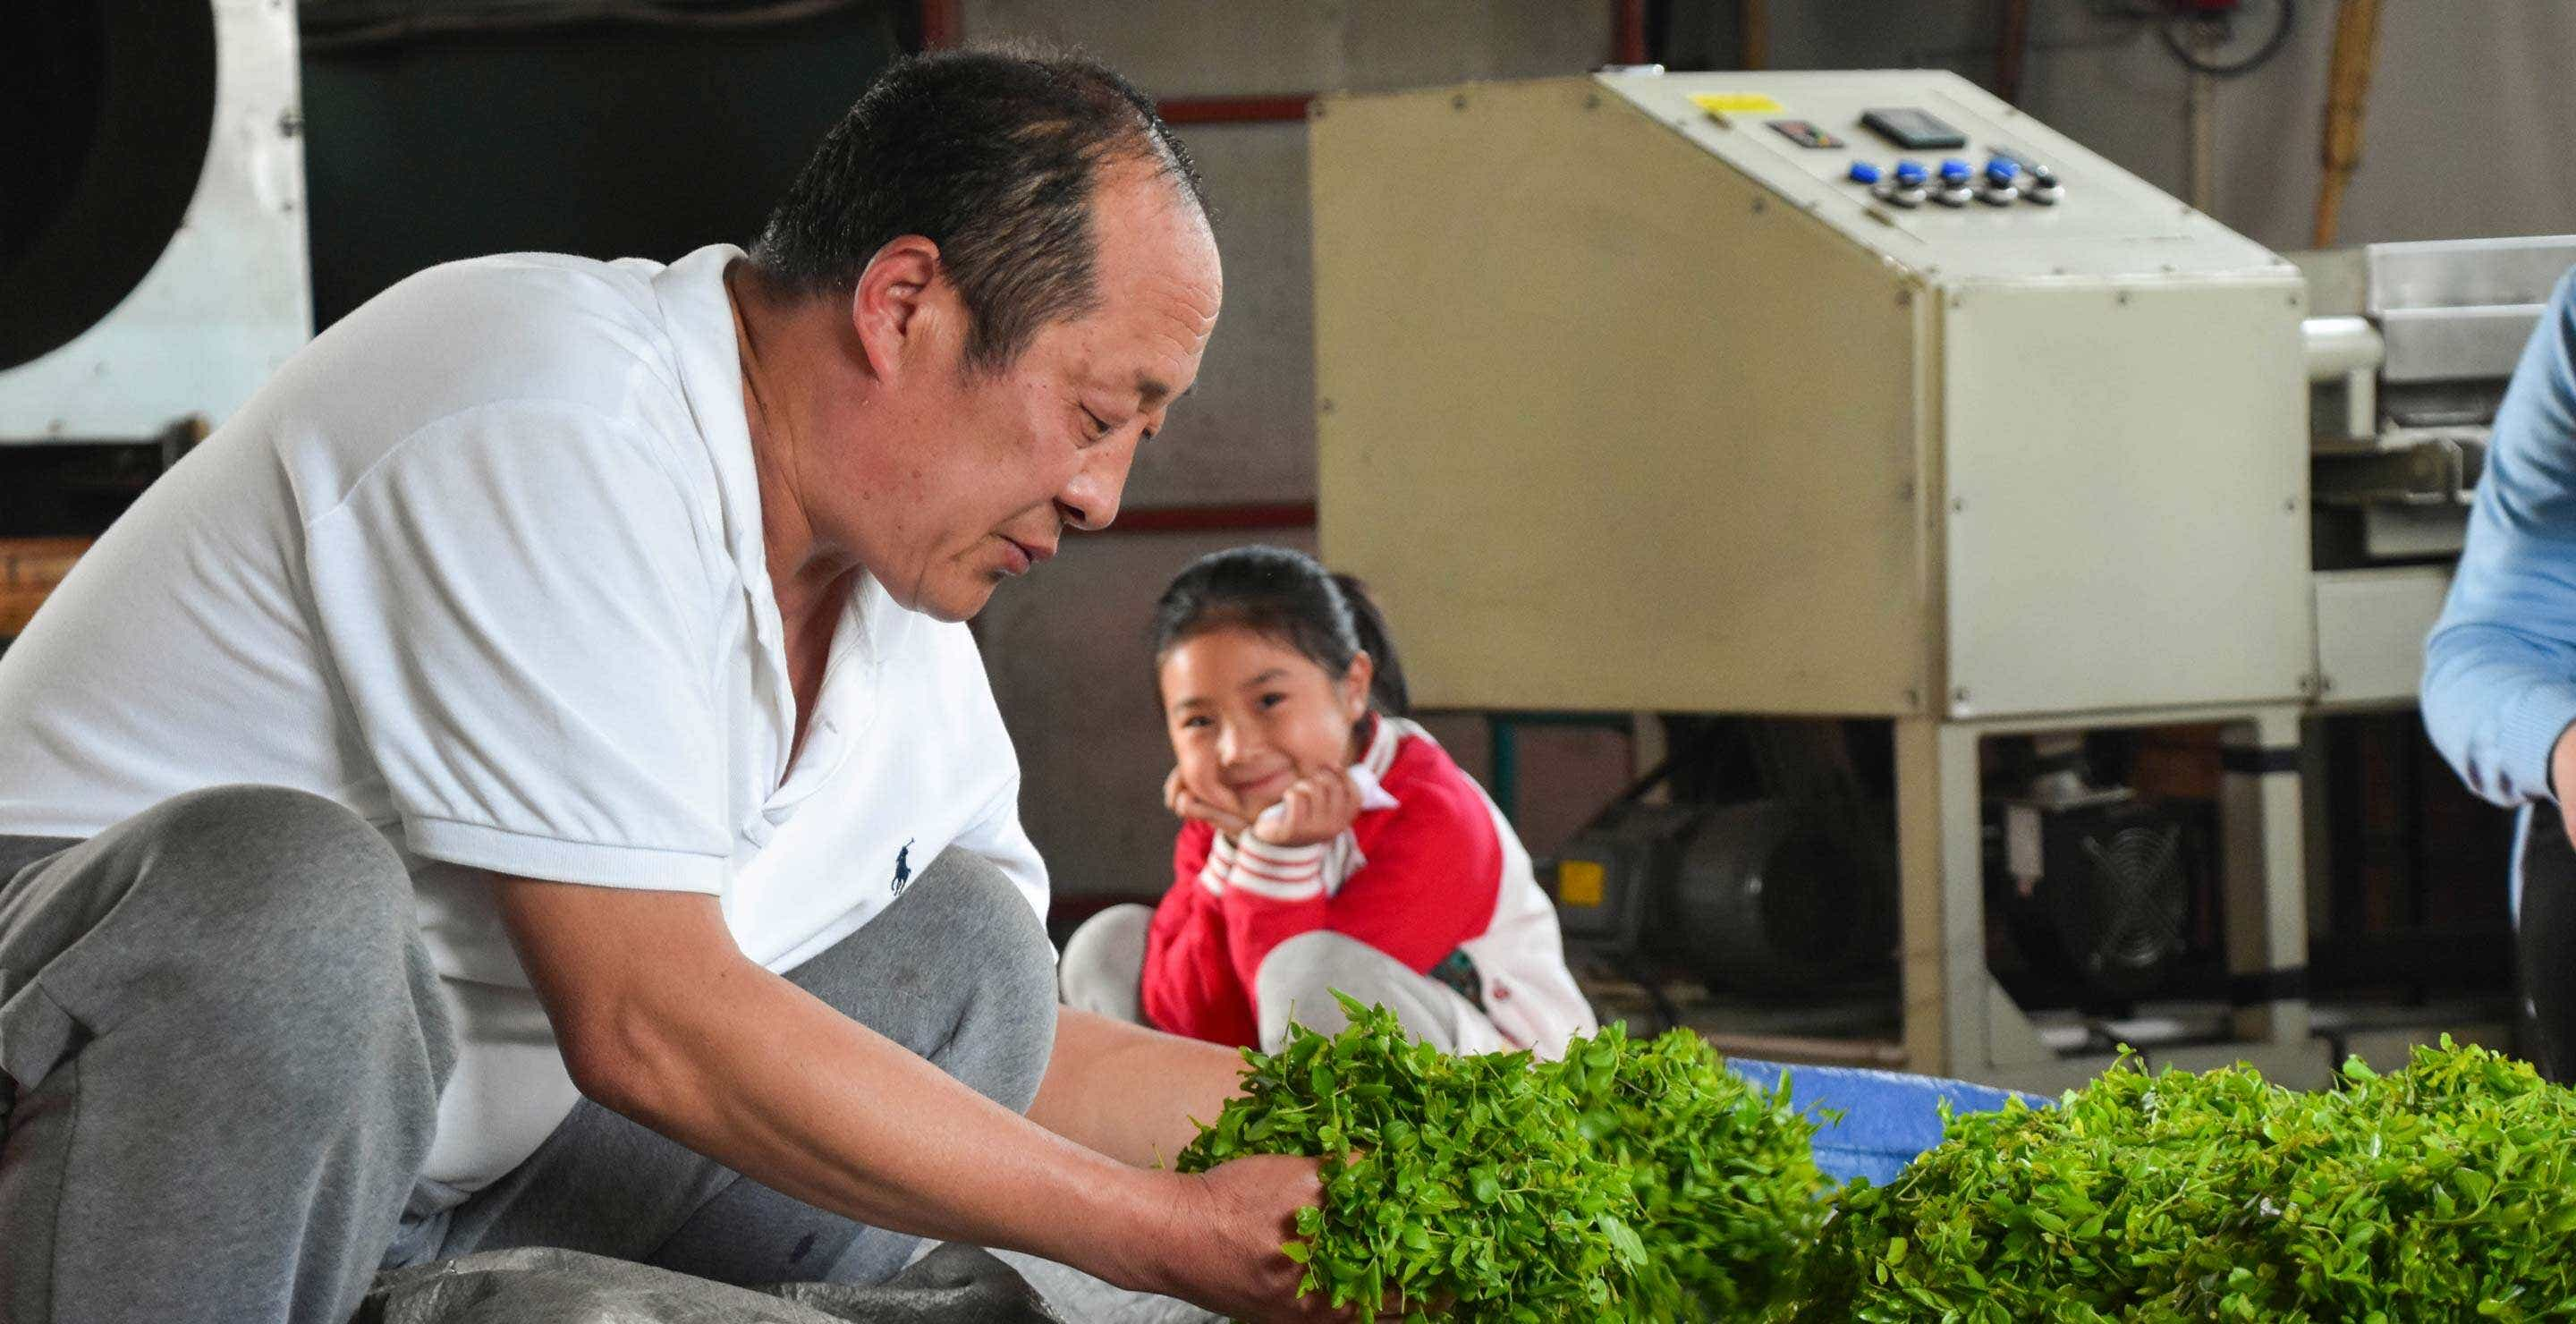 Liu Jiaqi watches as her grandfather works with fresh leaves in the He Family's workshop.